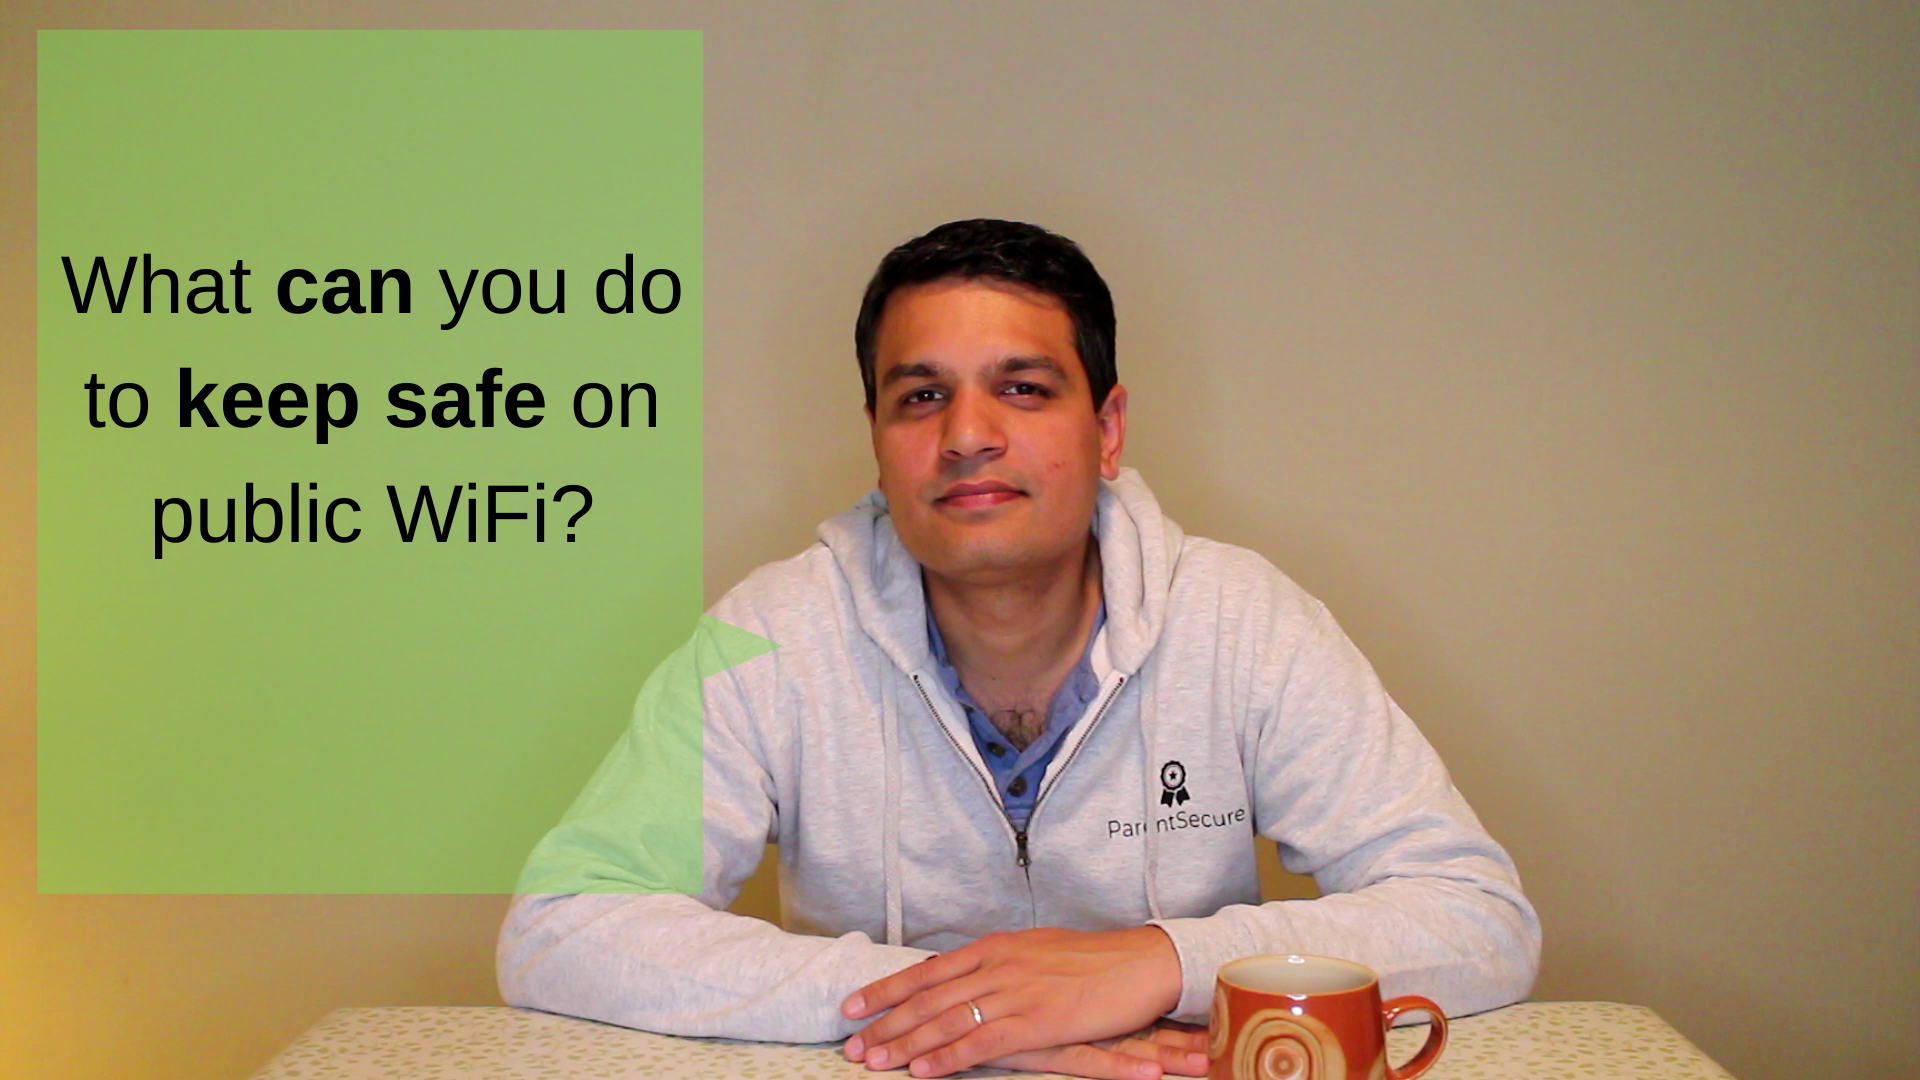 What-can-you-do-to-keep-safe-on-public-WiFi